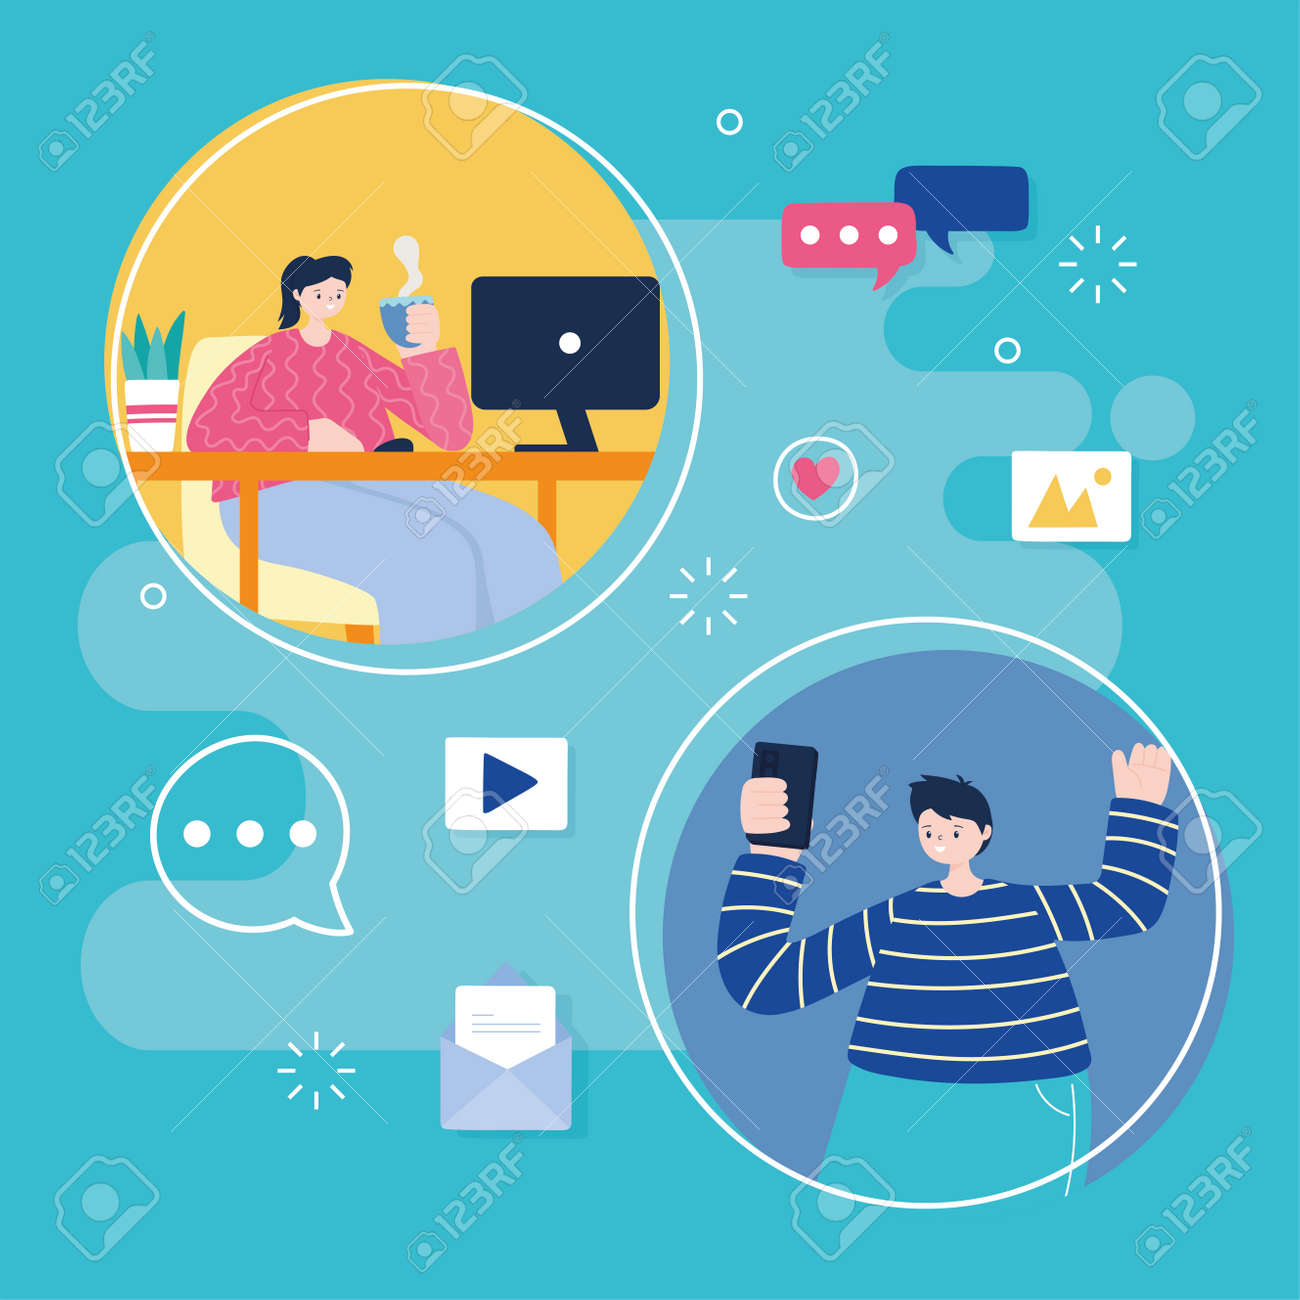 young man with mobile and woman with laptop networking and social media - 147673116